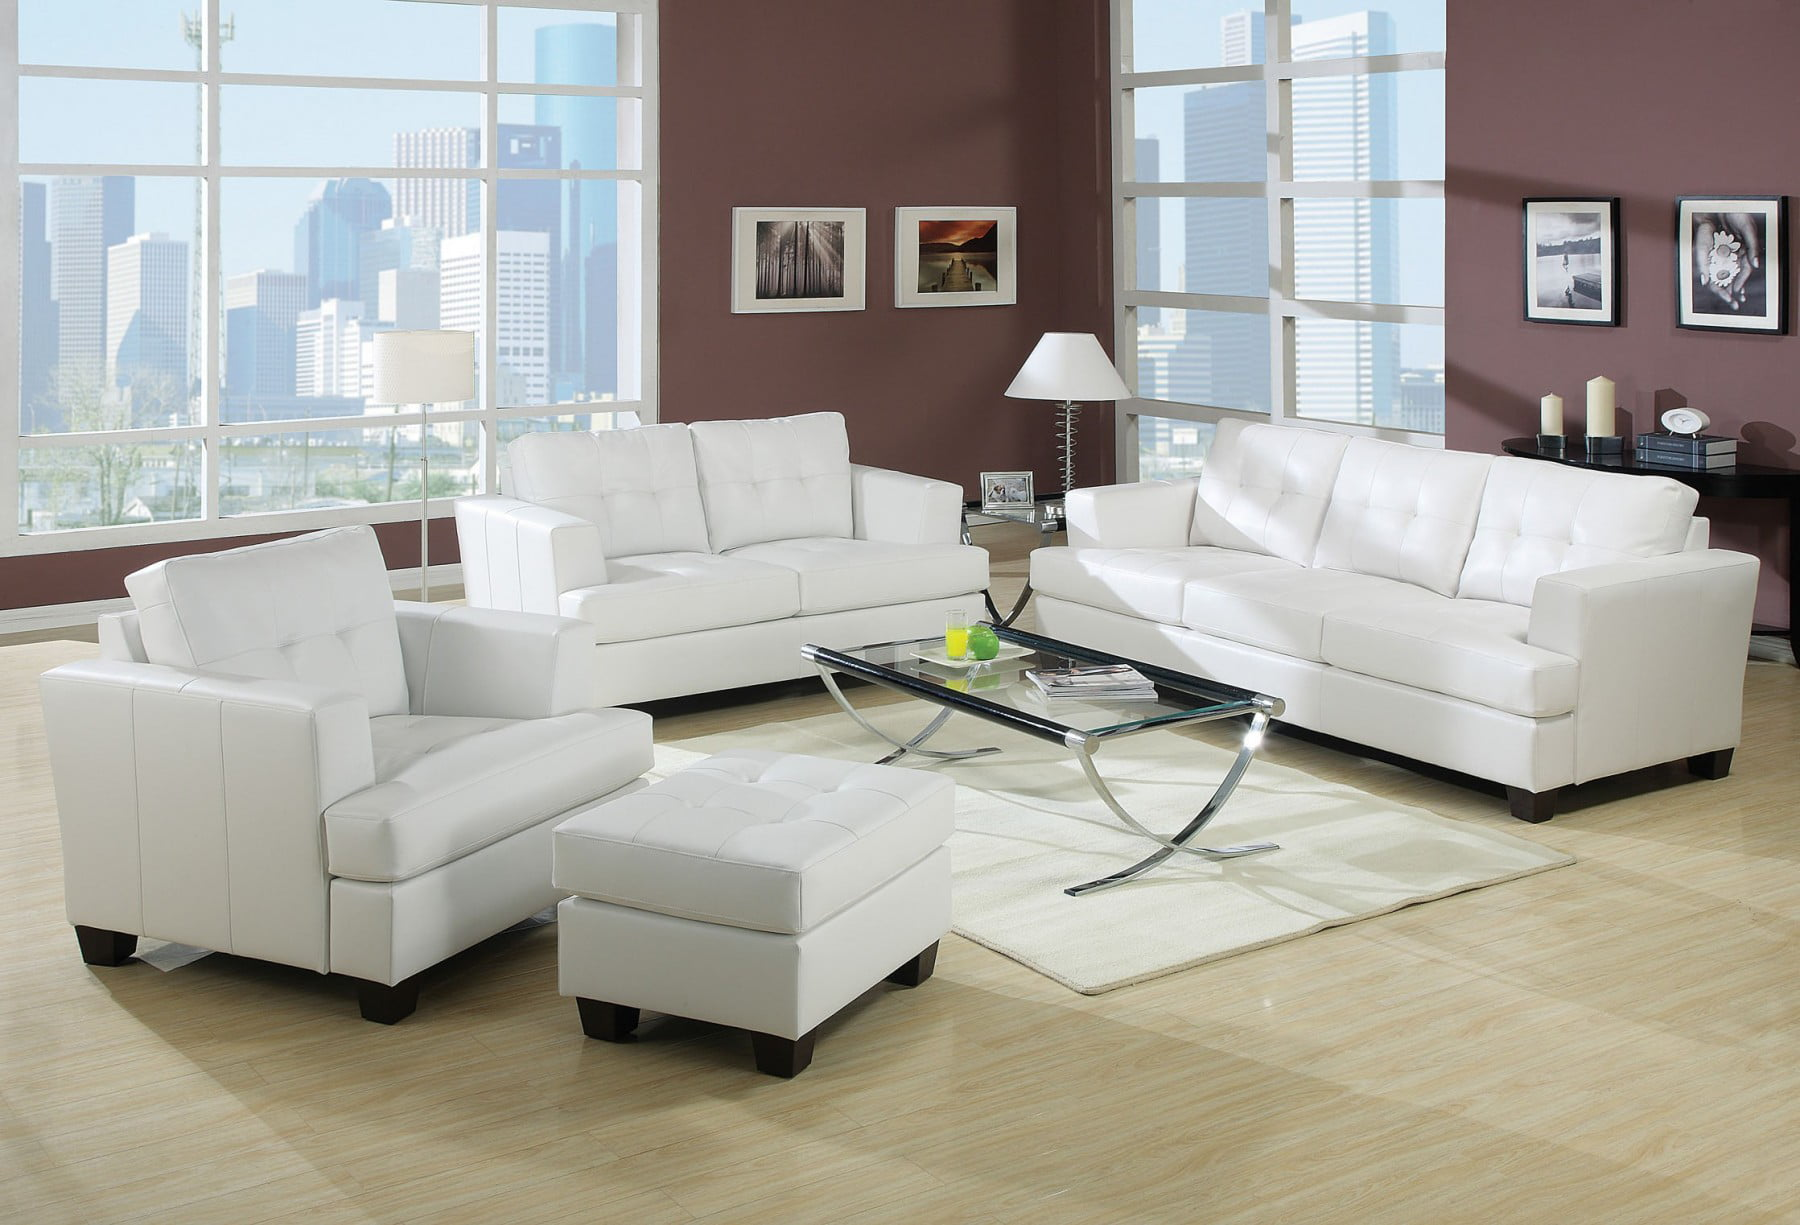 Acme Platinum White Sofa Set Sofa Loveseat Chair Contemporary White ...